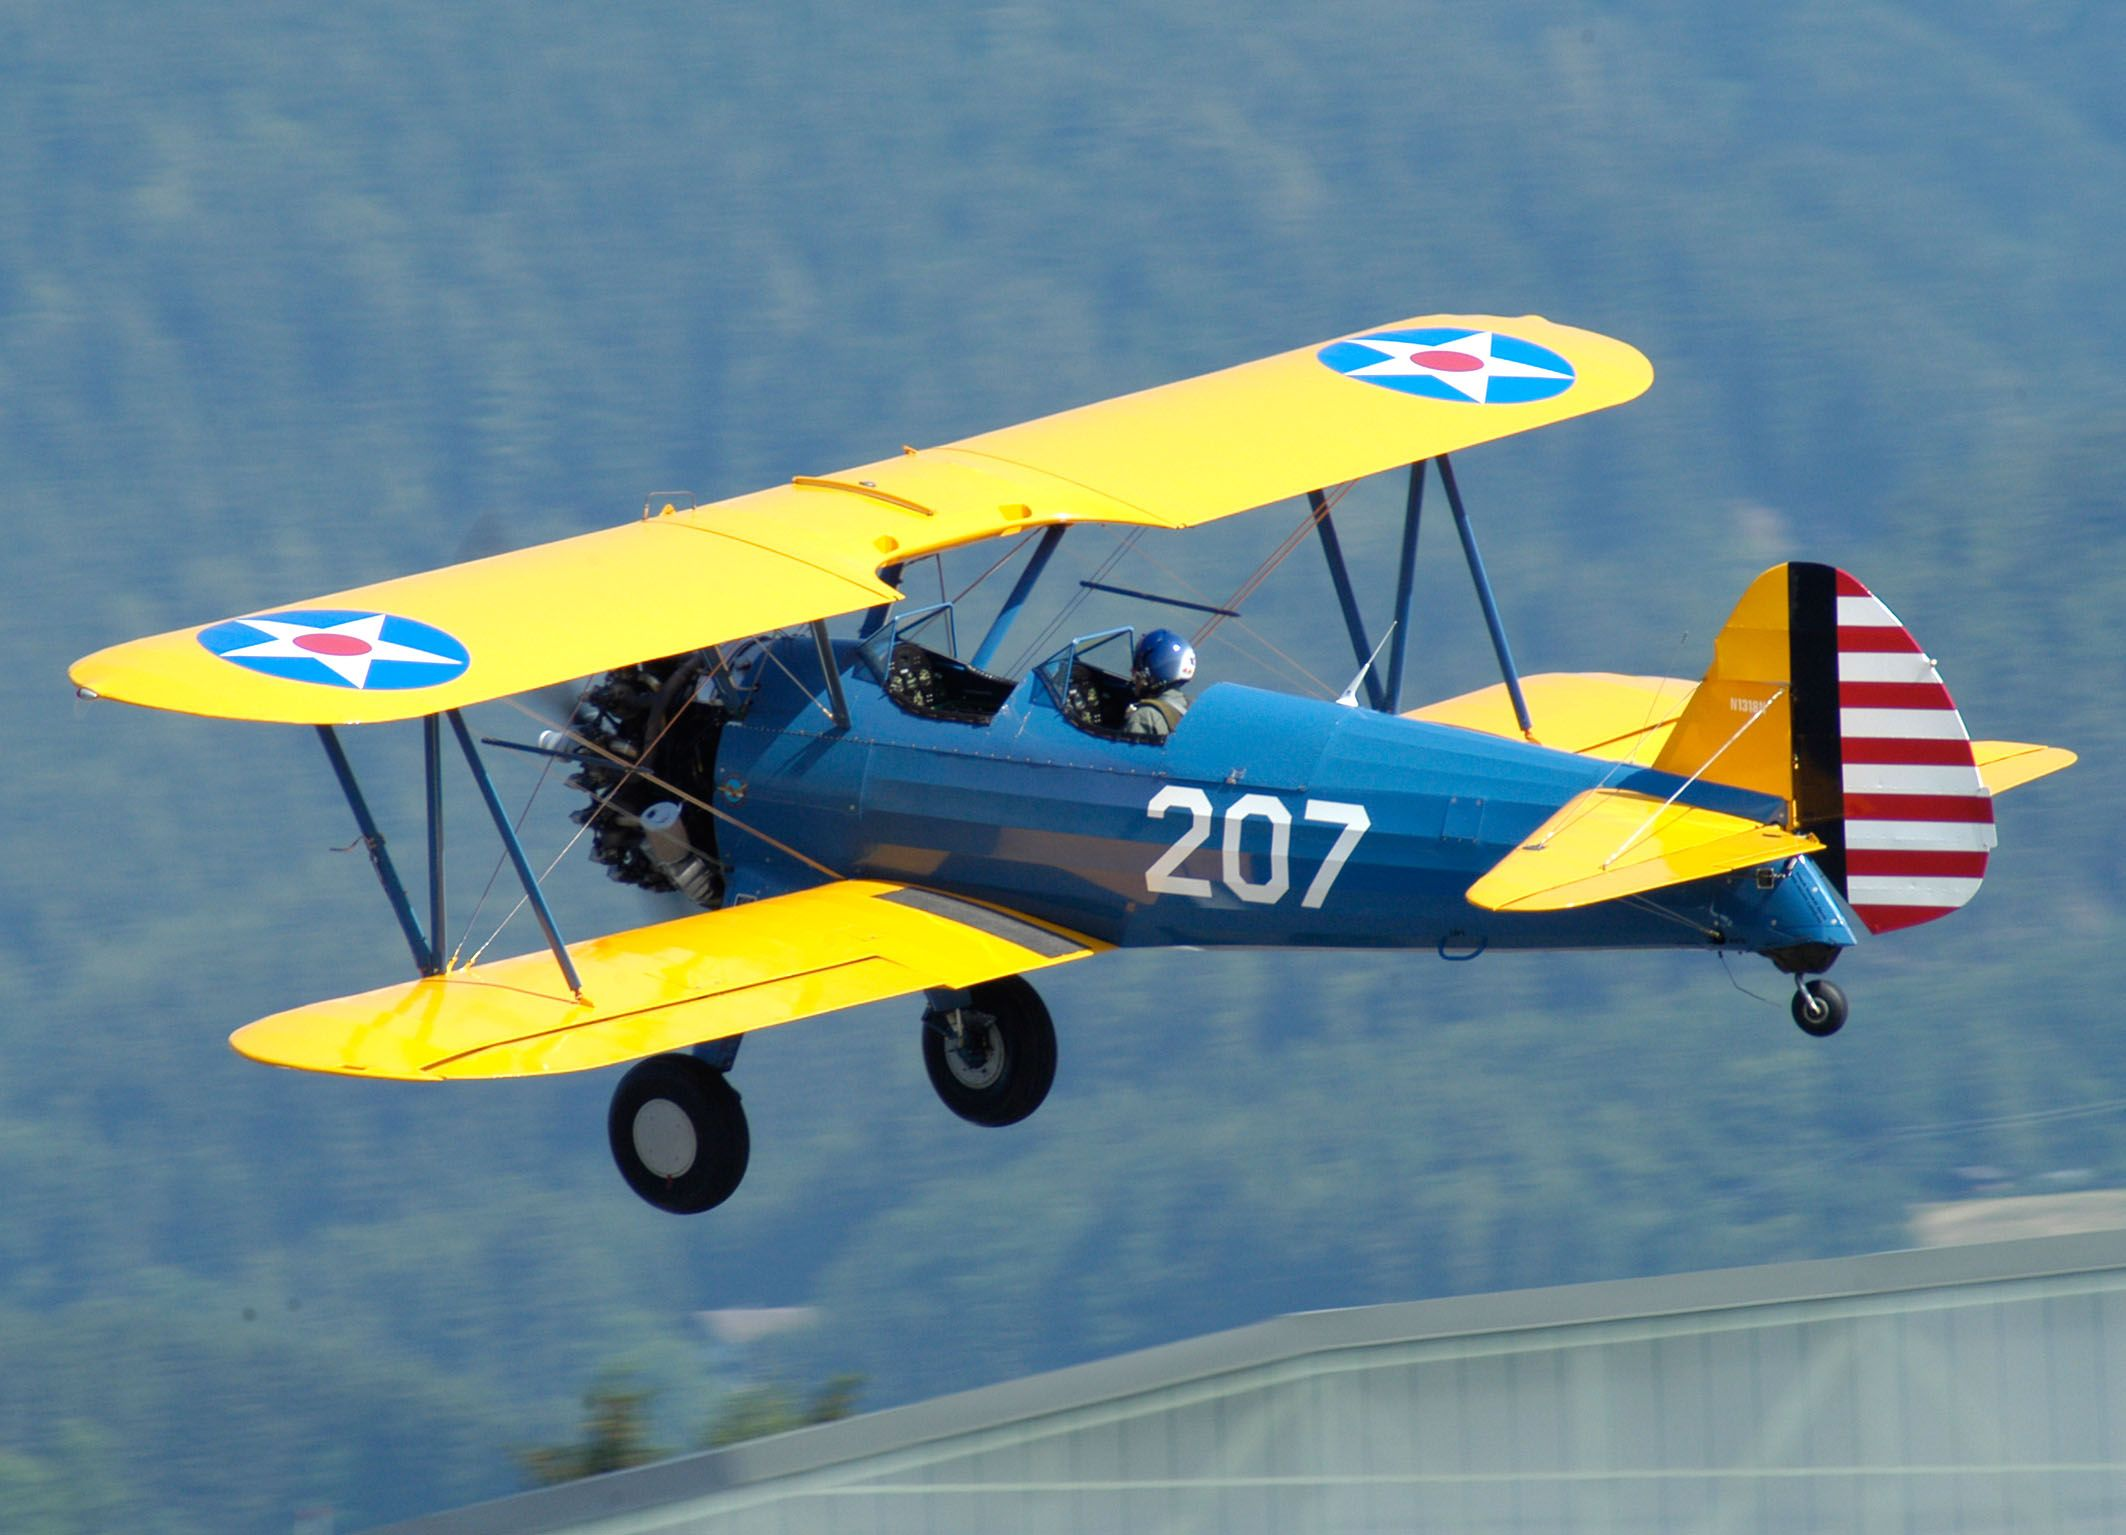 The Stearman Model 75 is a biplane used as a military trainer